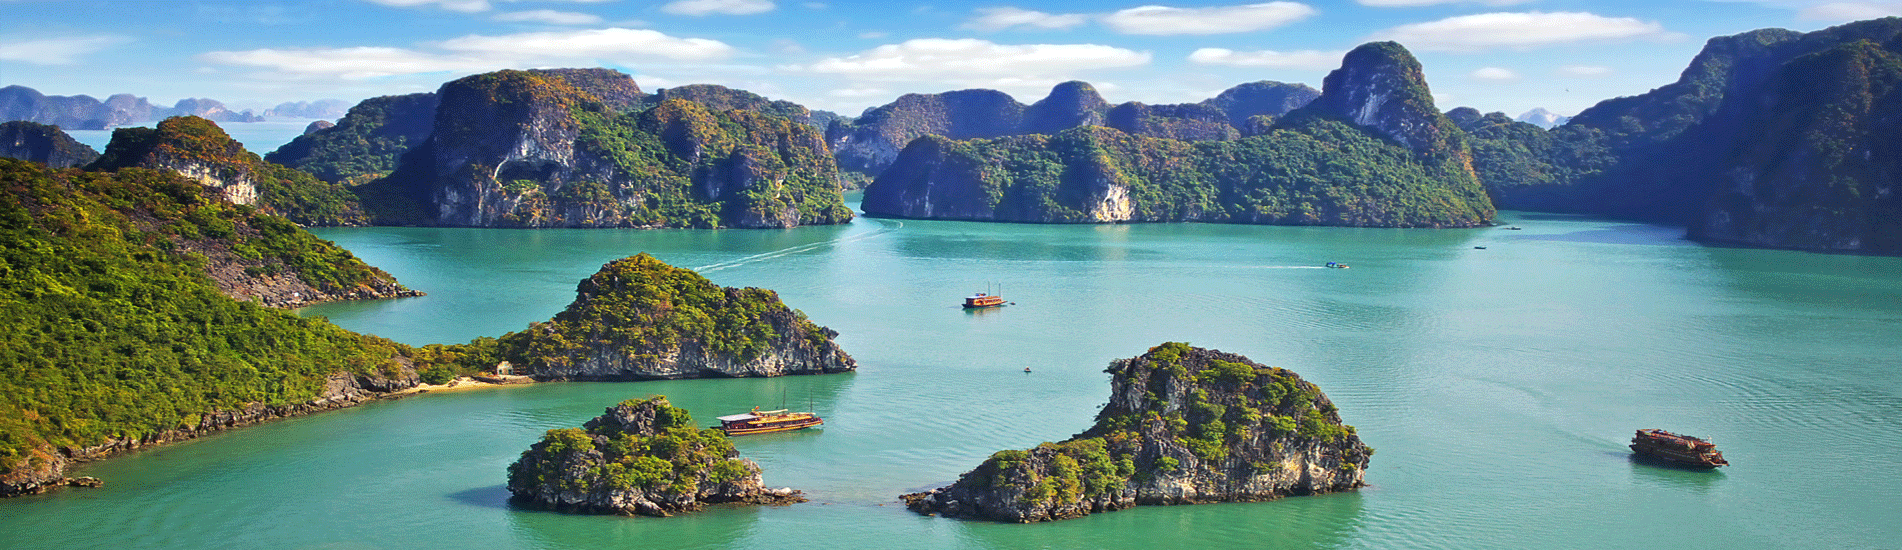 Halong Bay in Vietnam - World Natural Heritage and New Seven Natural Wonder